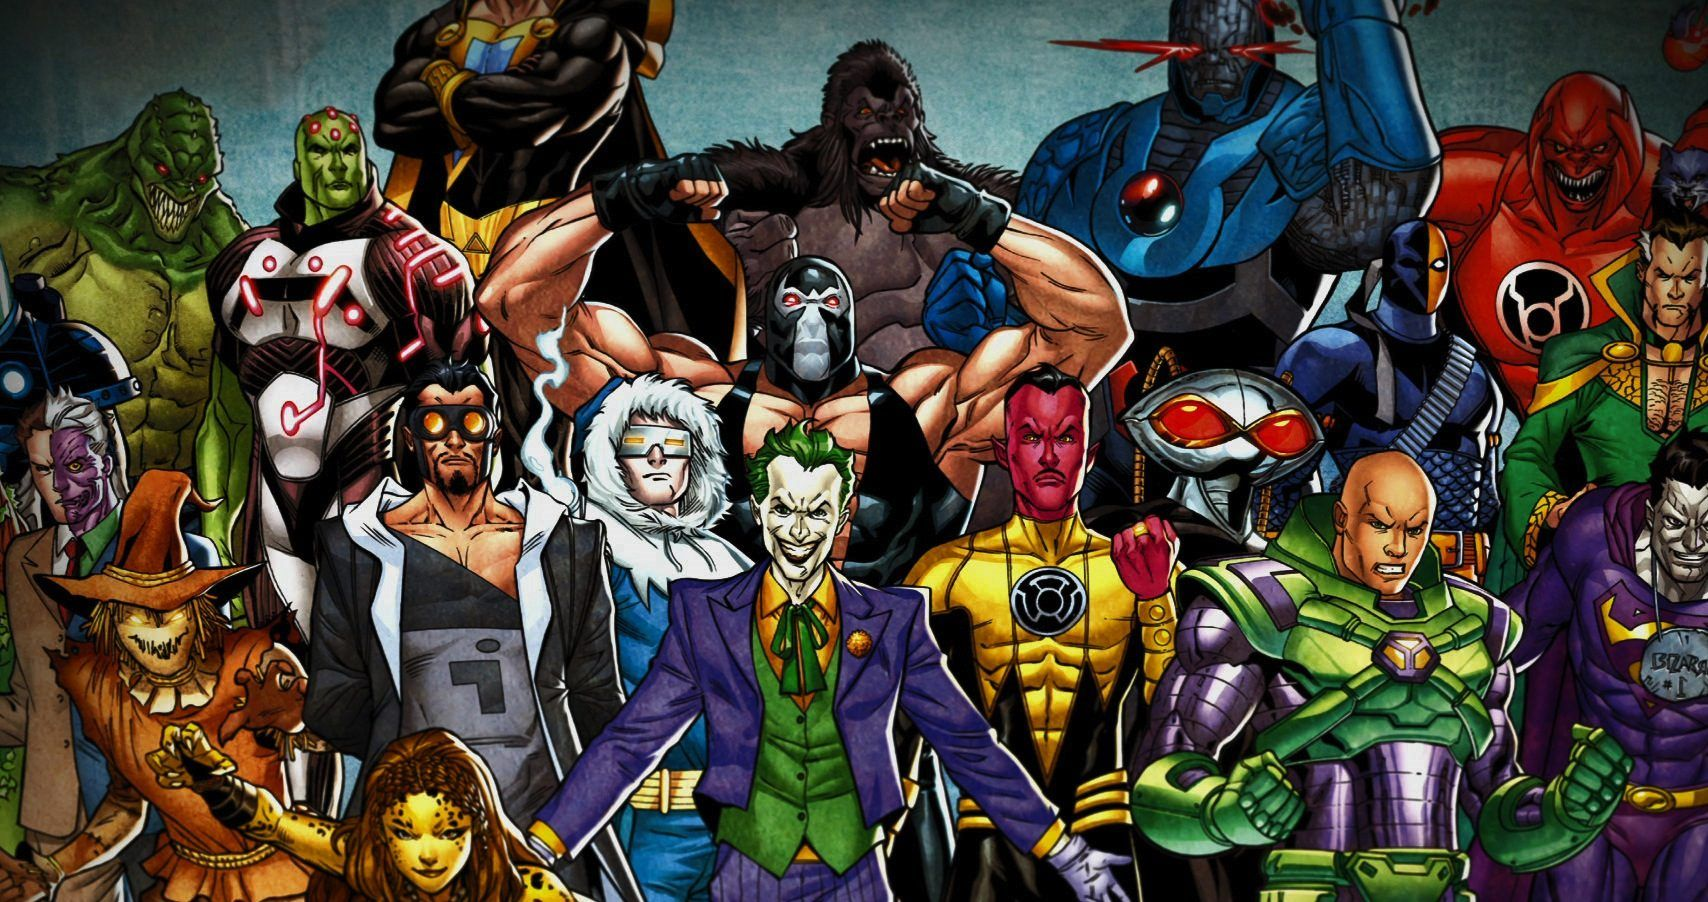 Mbti Personality Types Of Dc Super Villains Screenrant